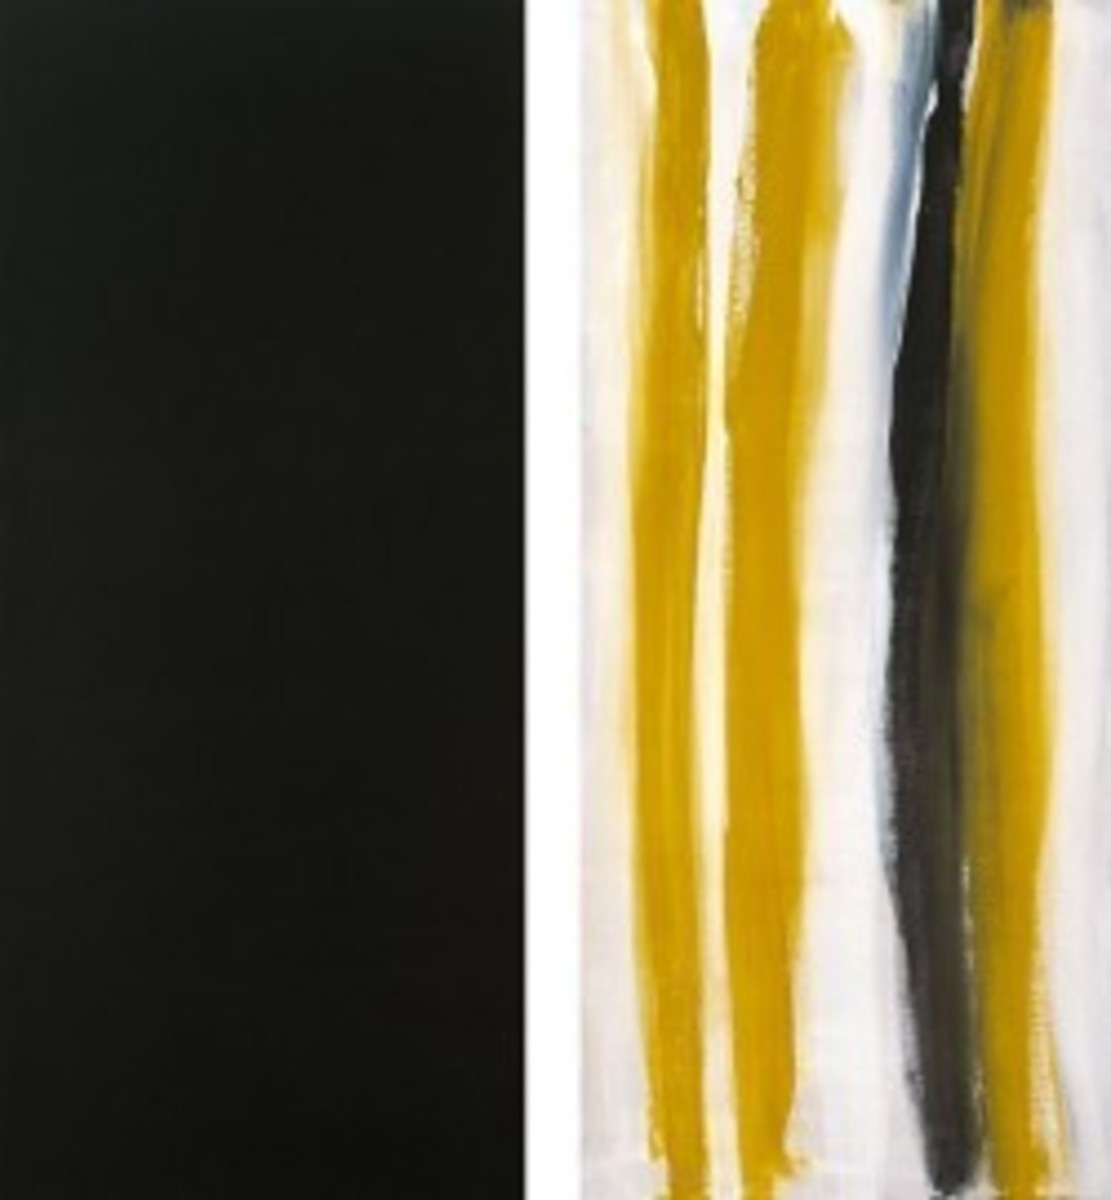 The Usual Time (Diptych 2)